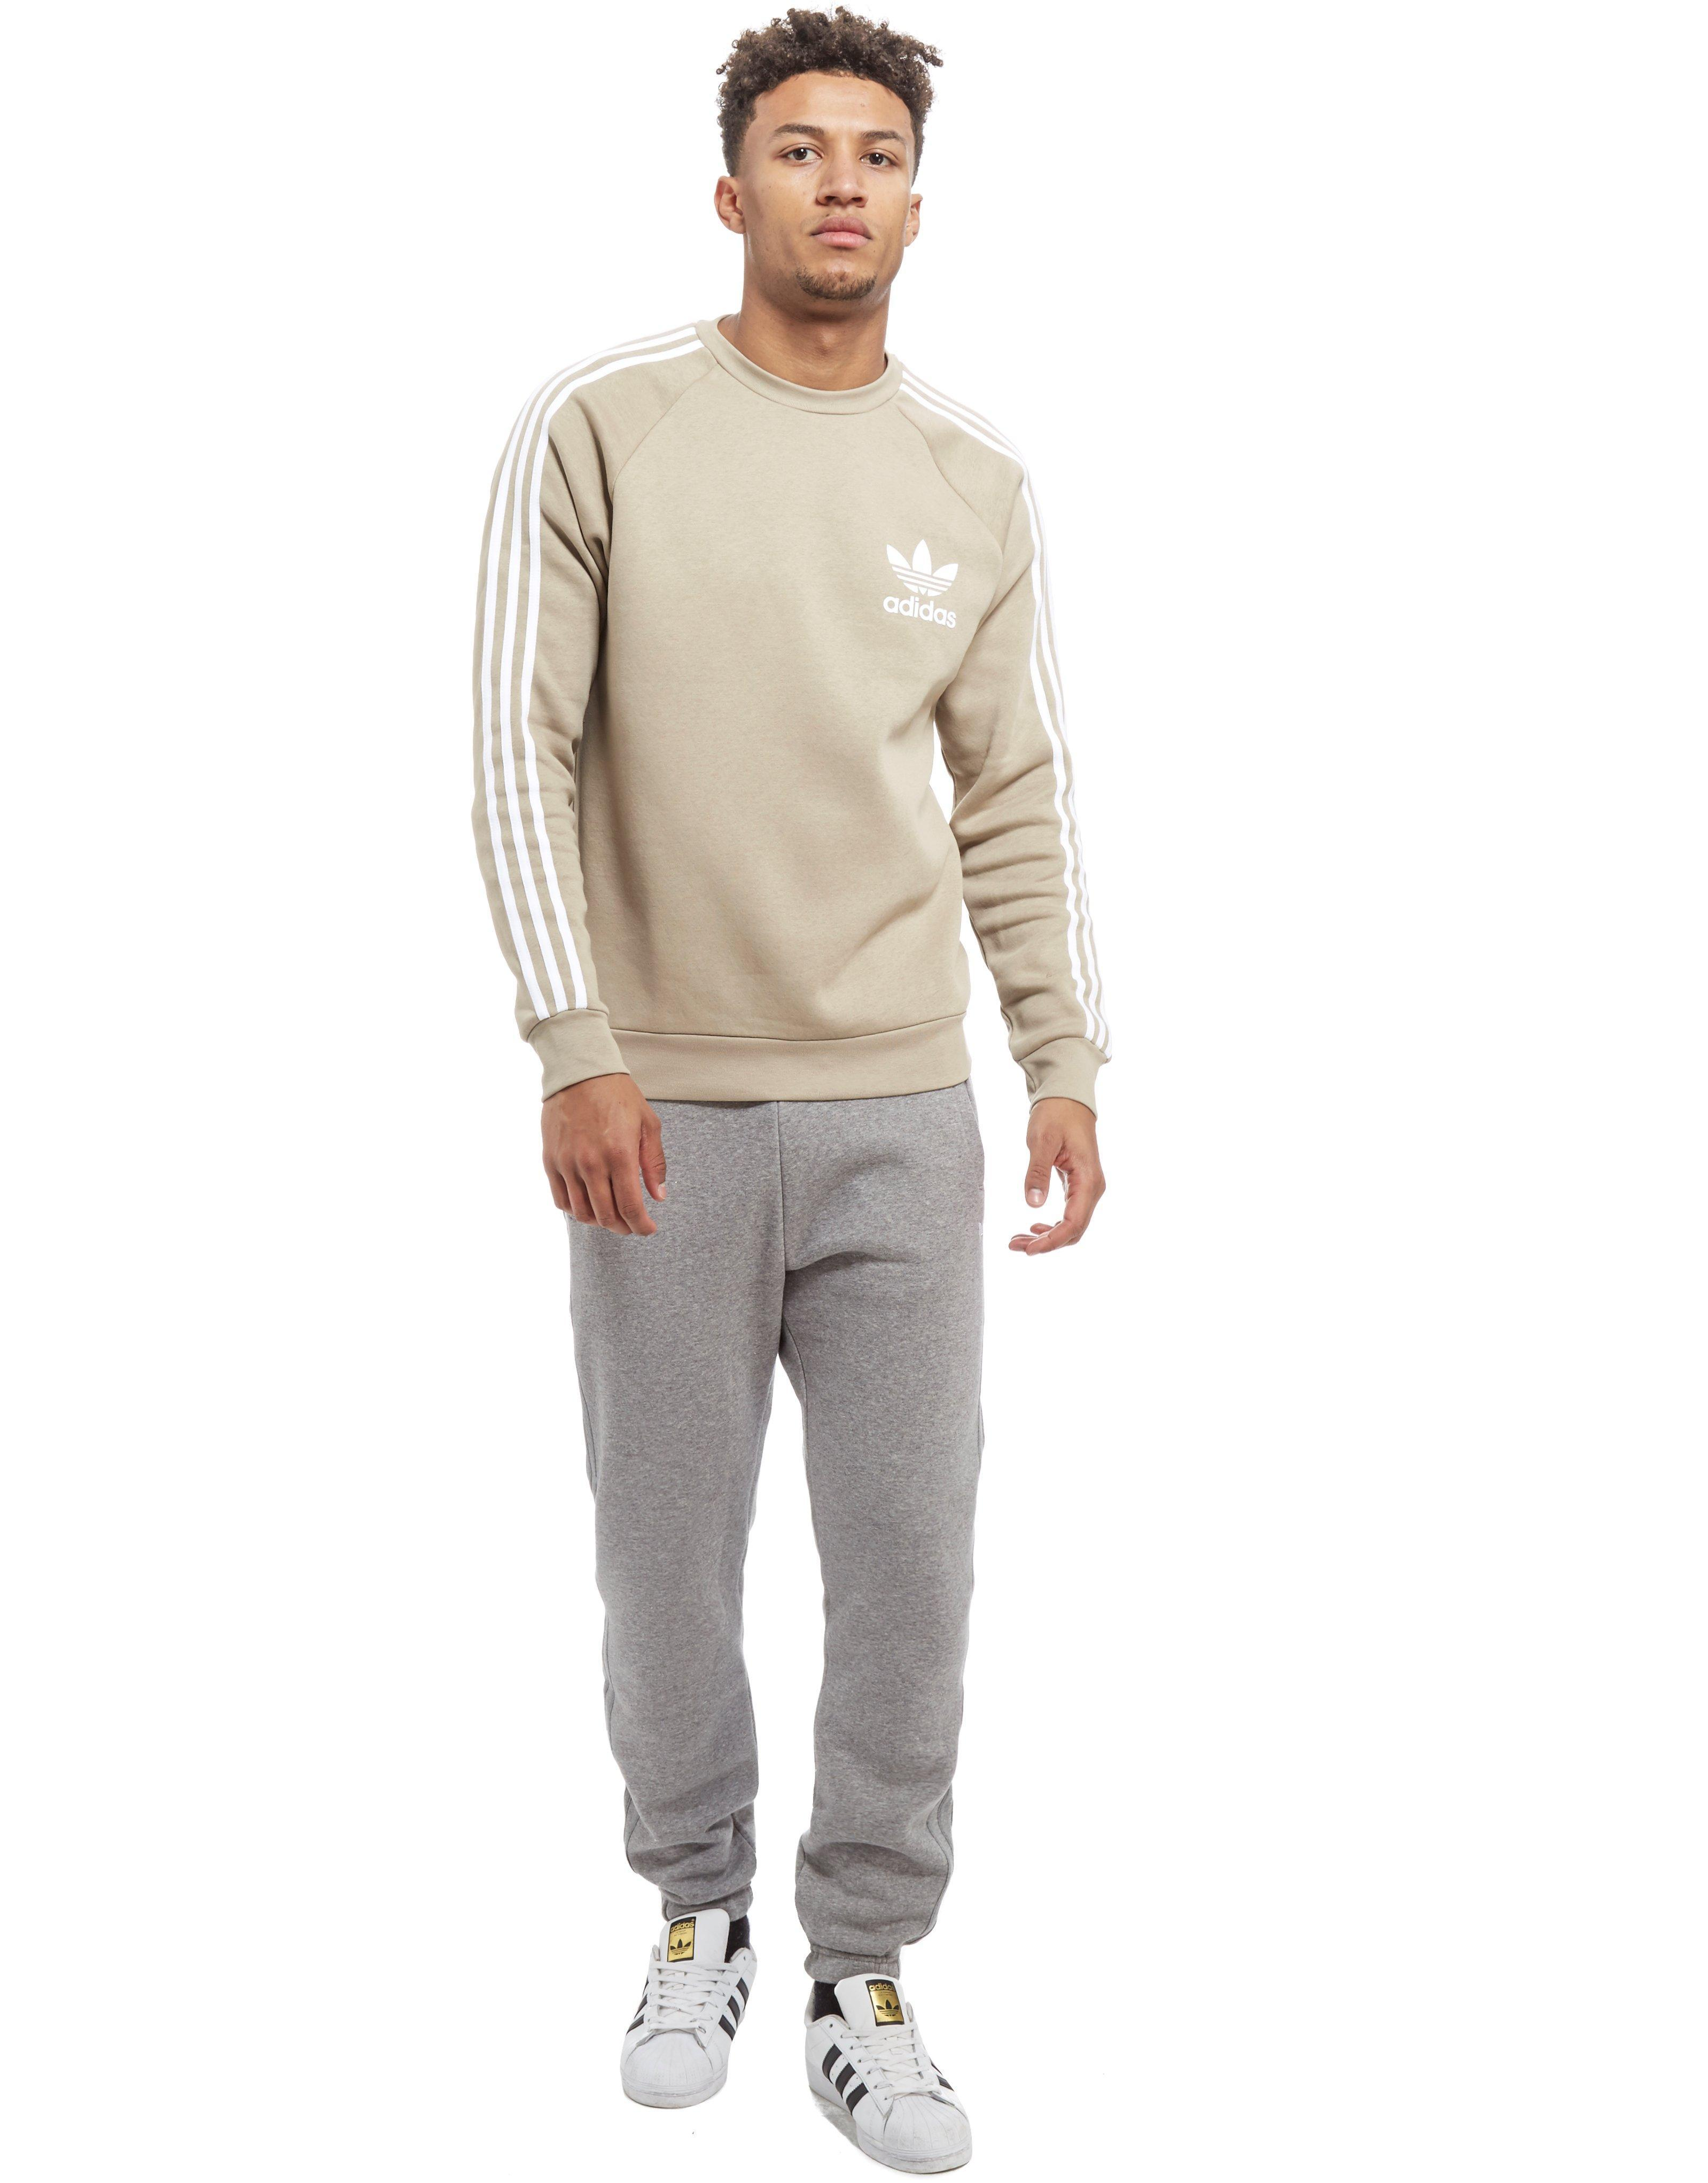 Very Goods | adidas Originals California Crew Sweatshirt | Size?